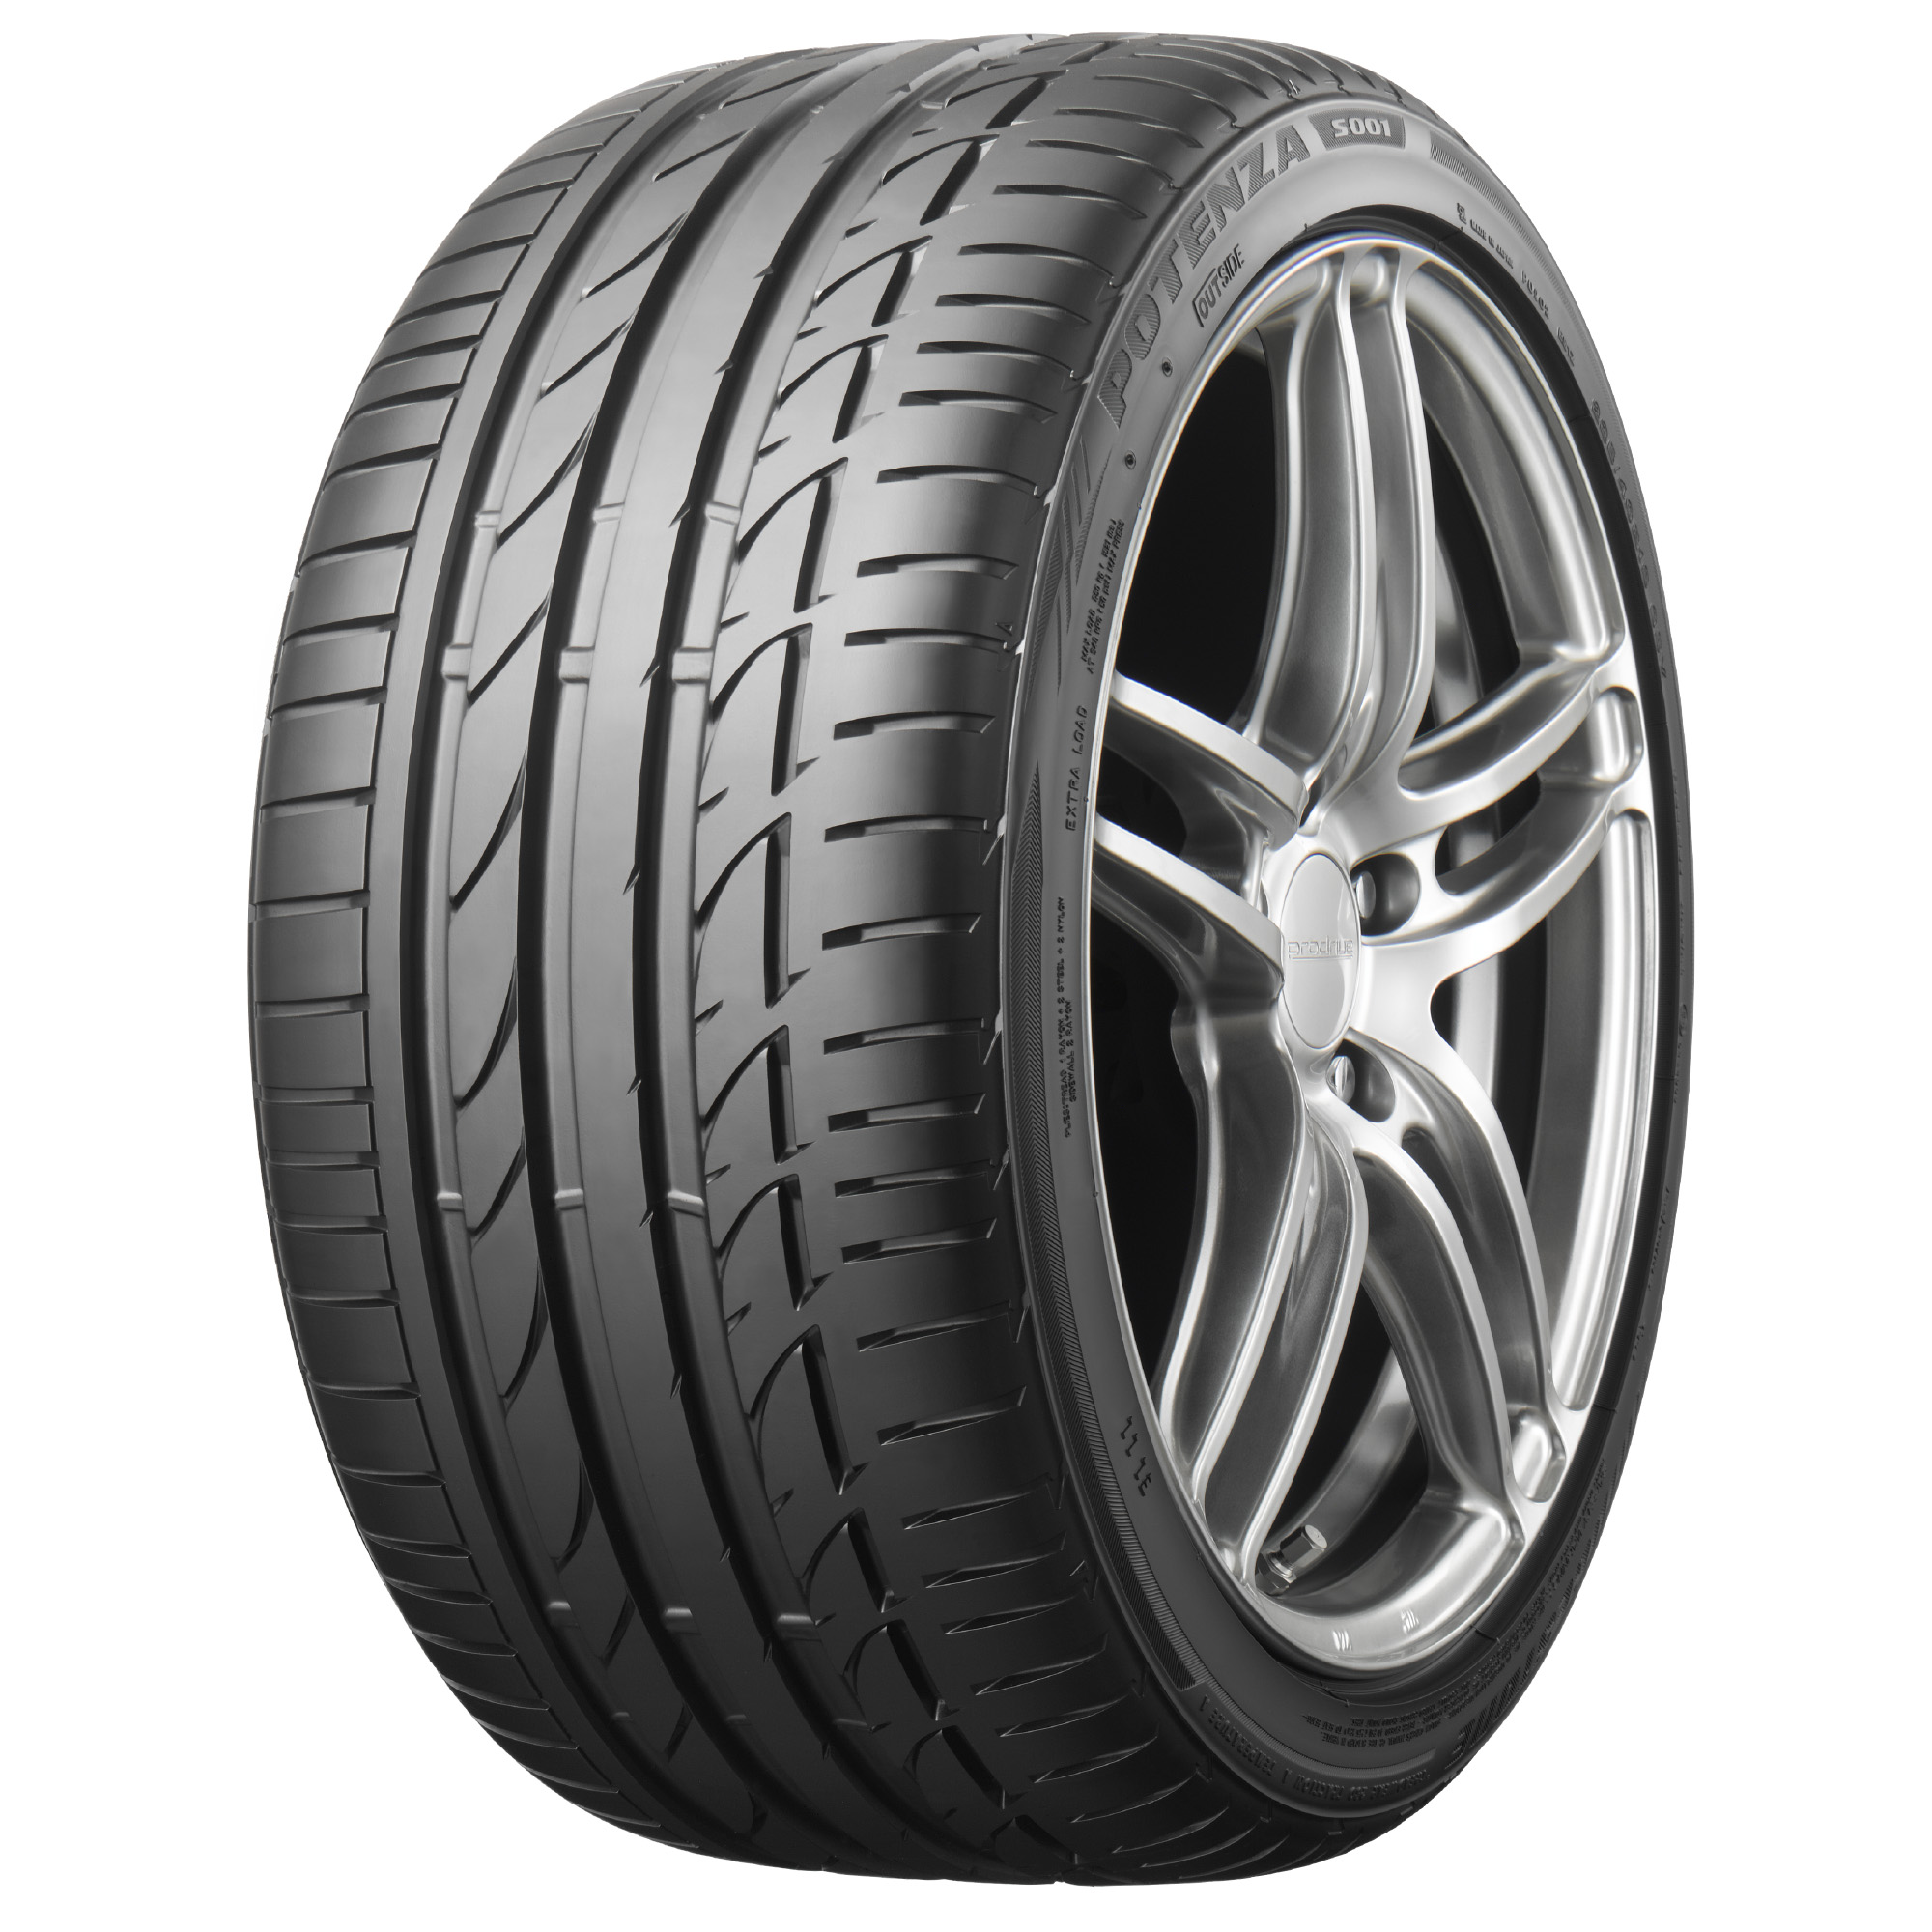 Bridgestone Potenza S001 Run-Flat Technology Tyre